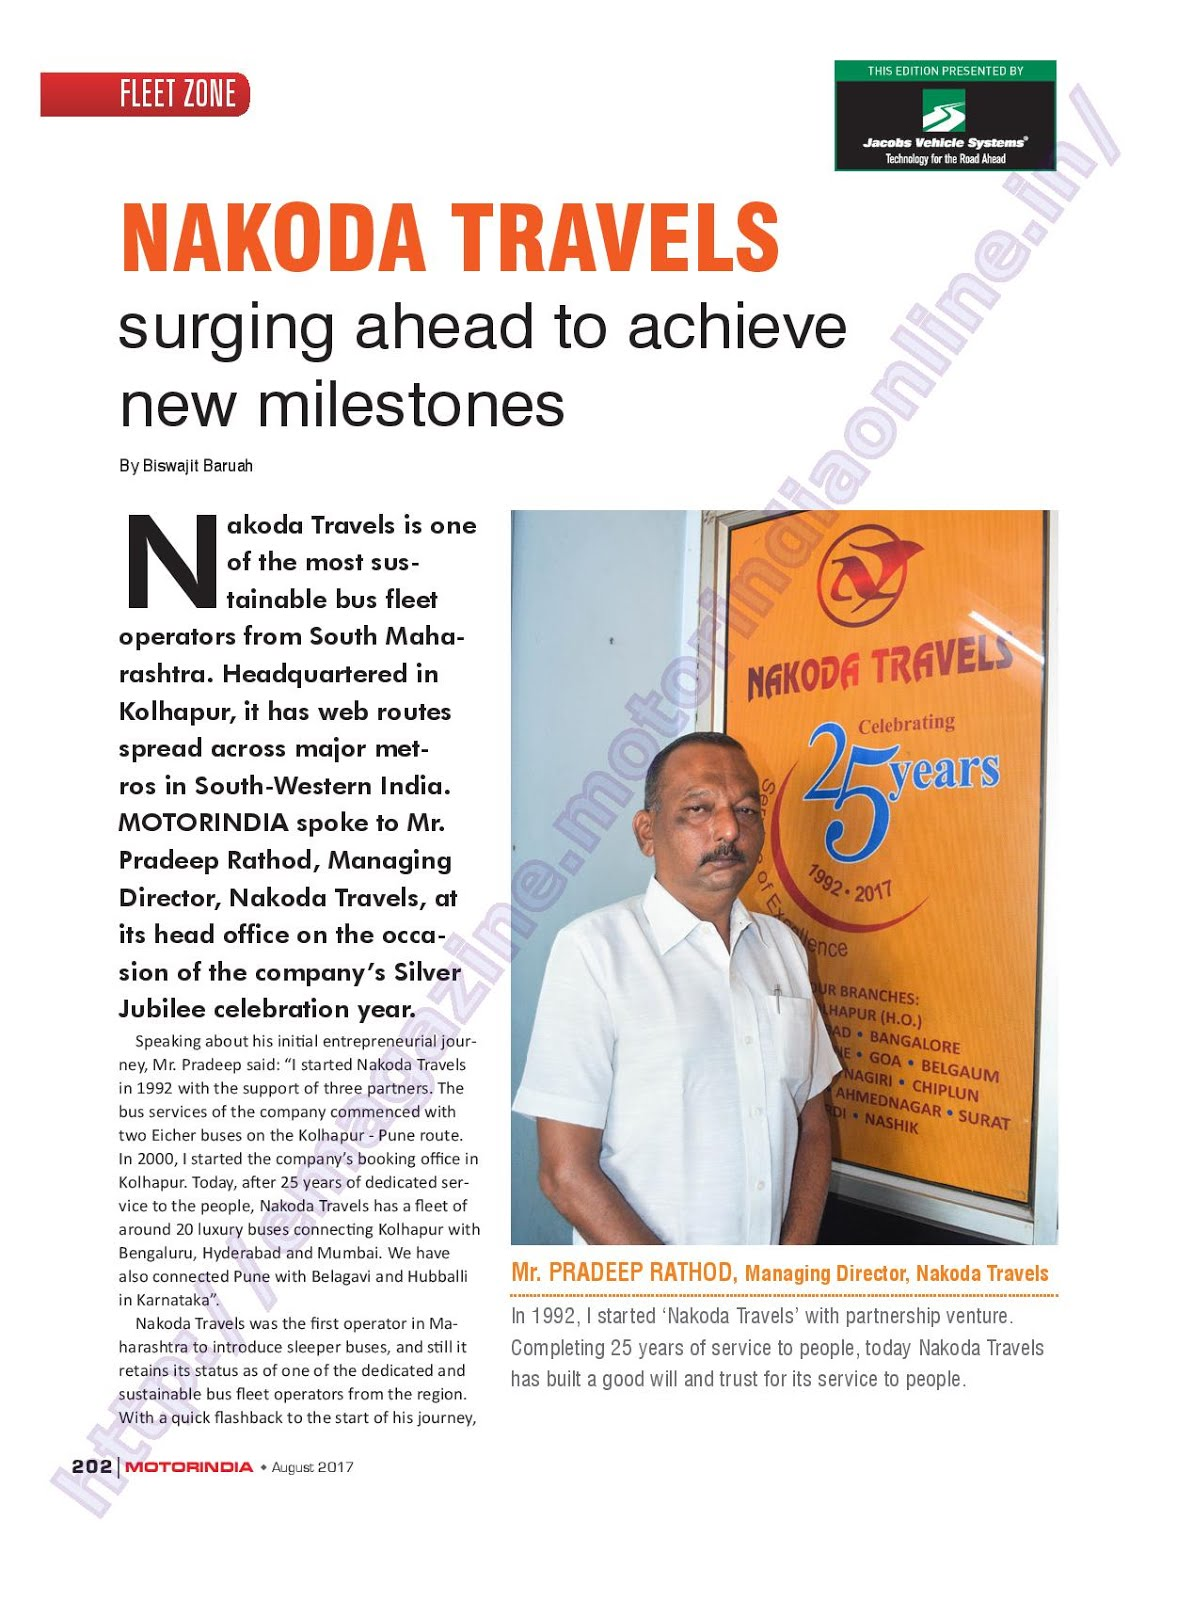 MOTOR INDIA ARTICLE 16 : NAKODA TRAVELS